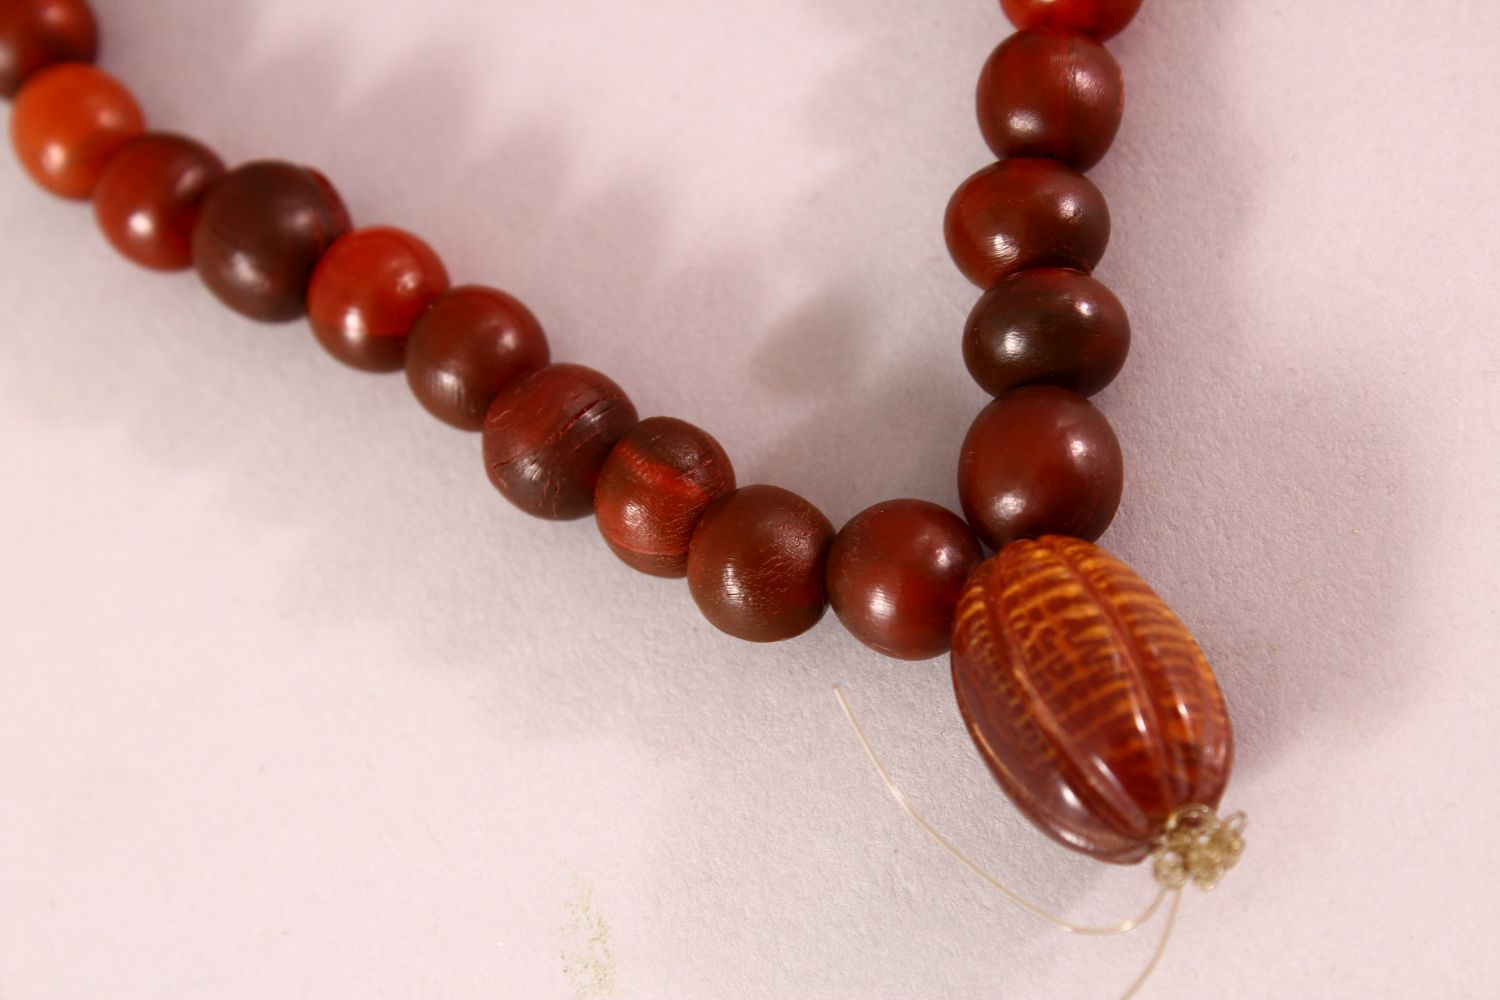 A RHINO HORN BEAD NECKLACE, beads approx 10mm diameter, weight 65g. - Image 3 of 3